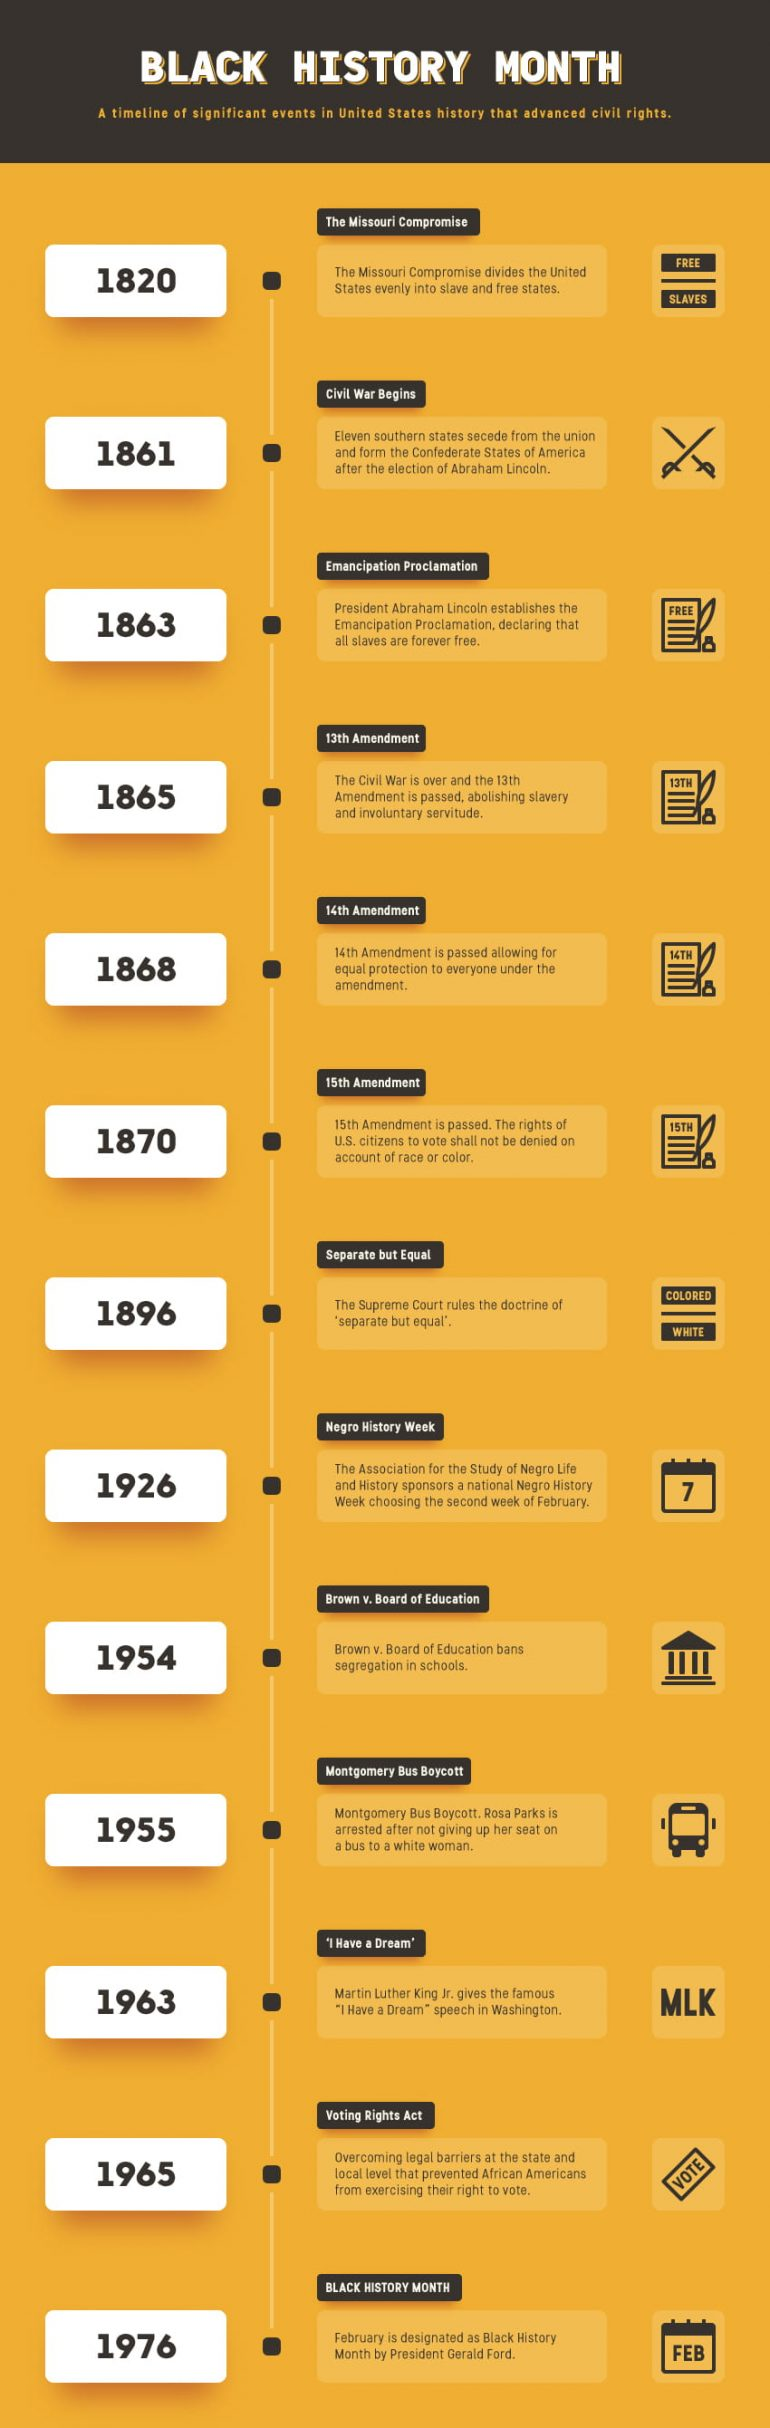 Timeline Infographic for Black History Month